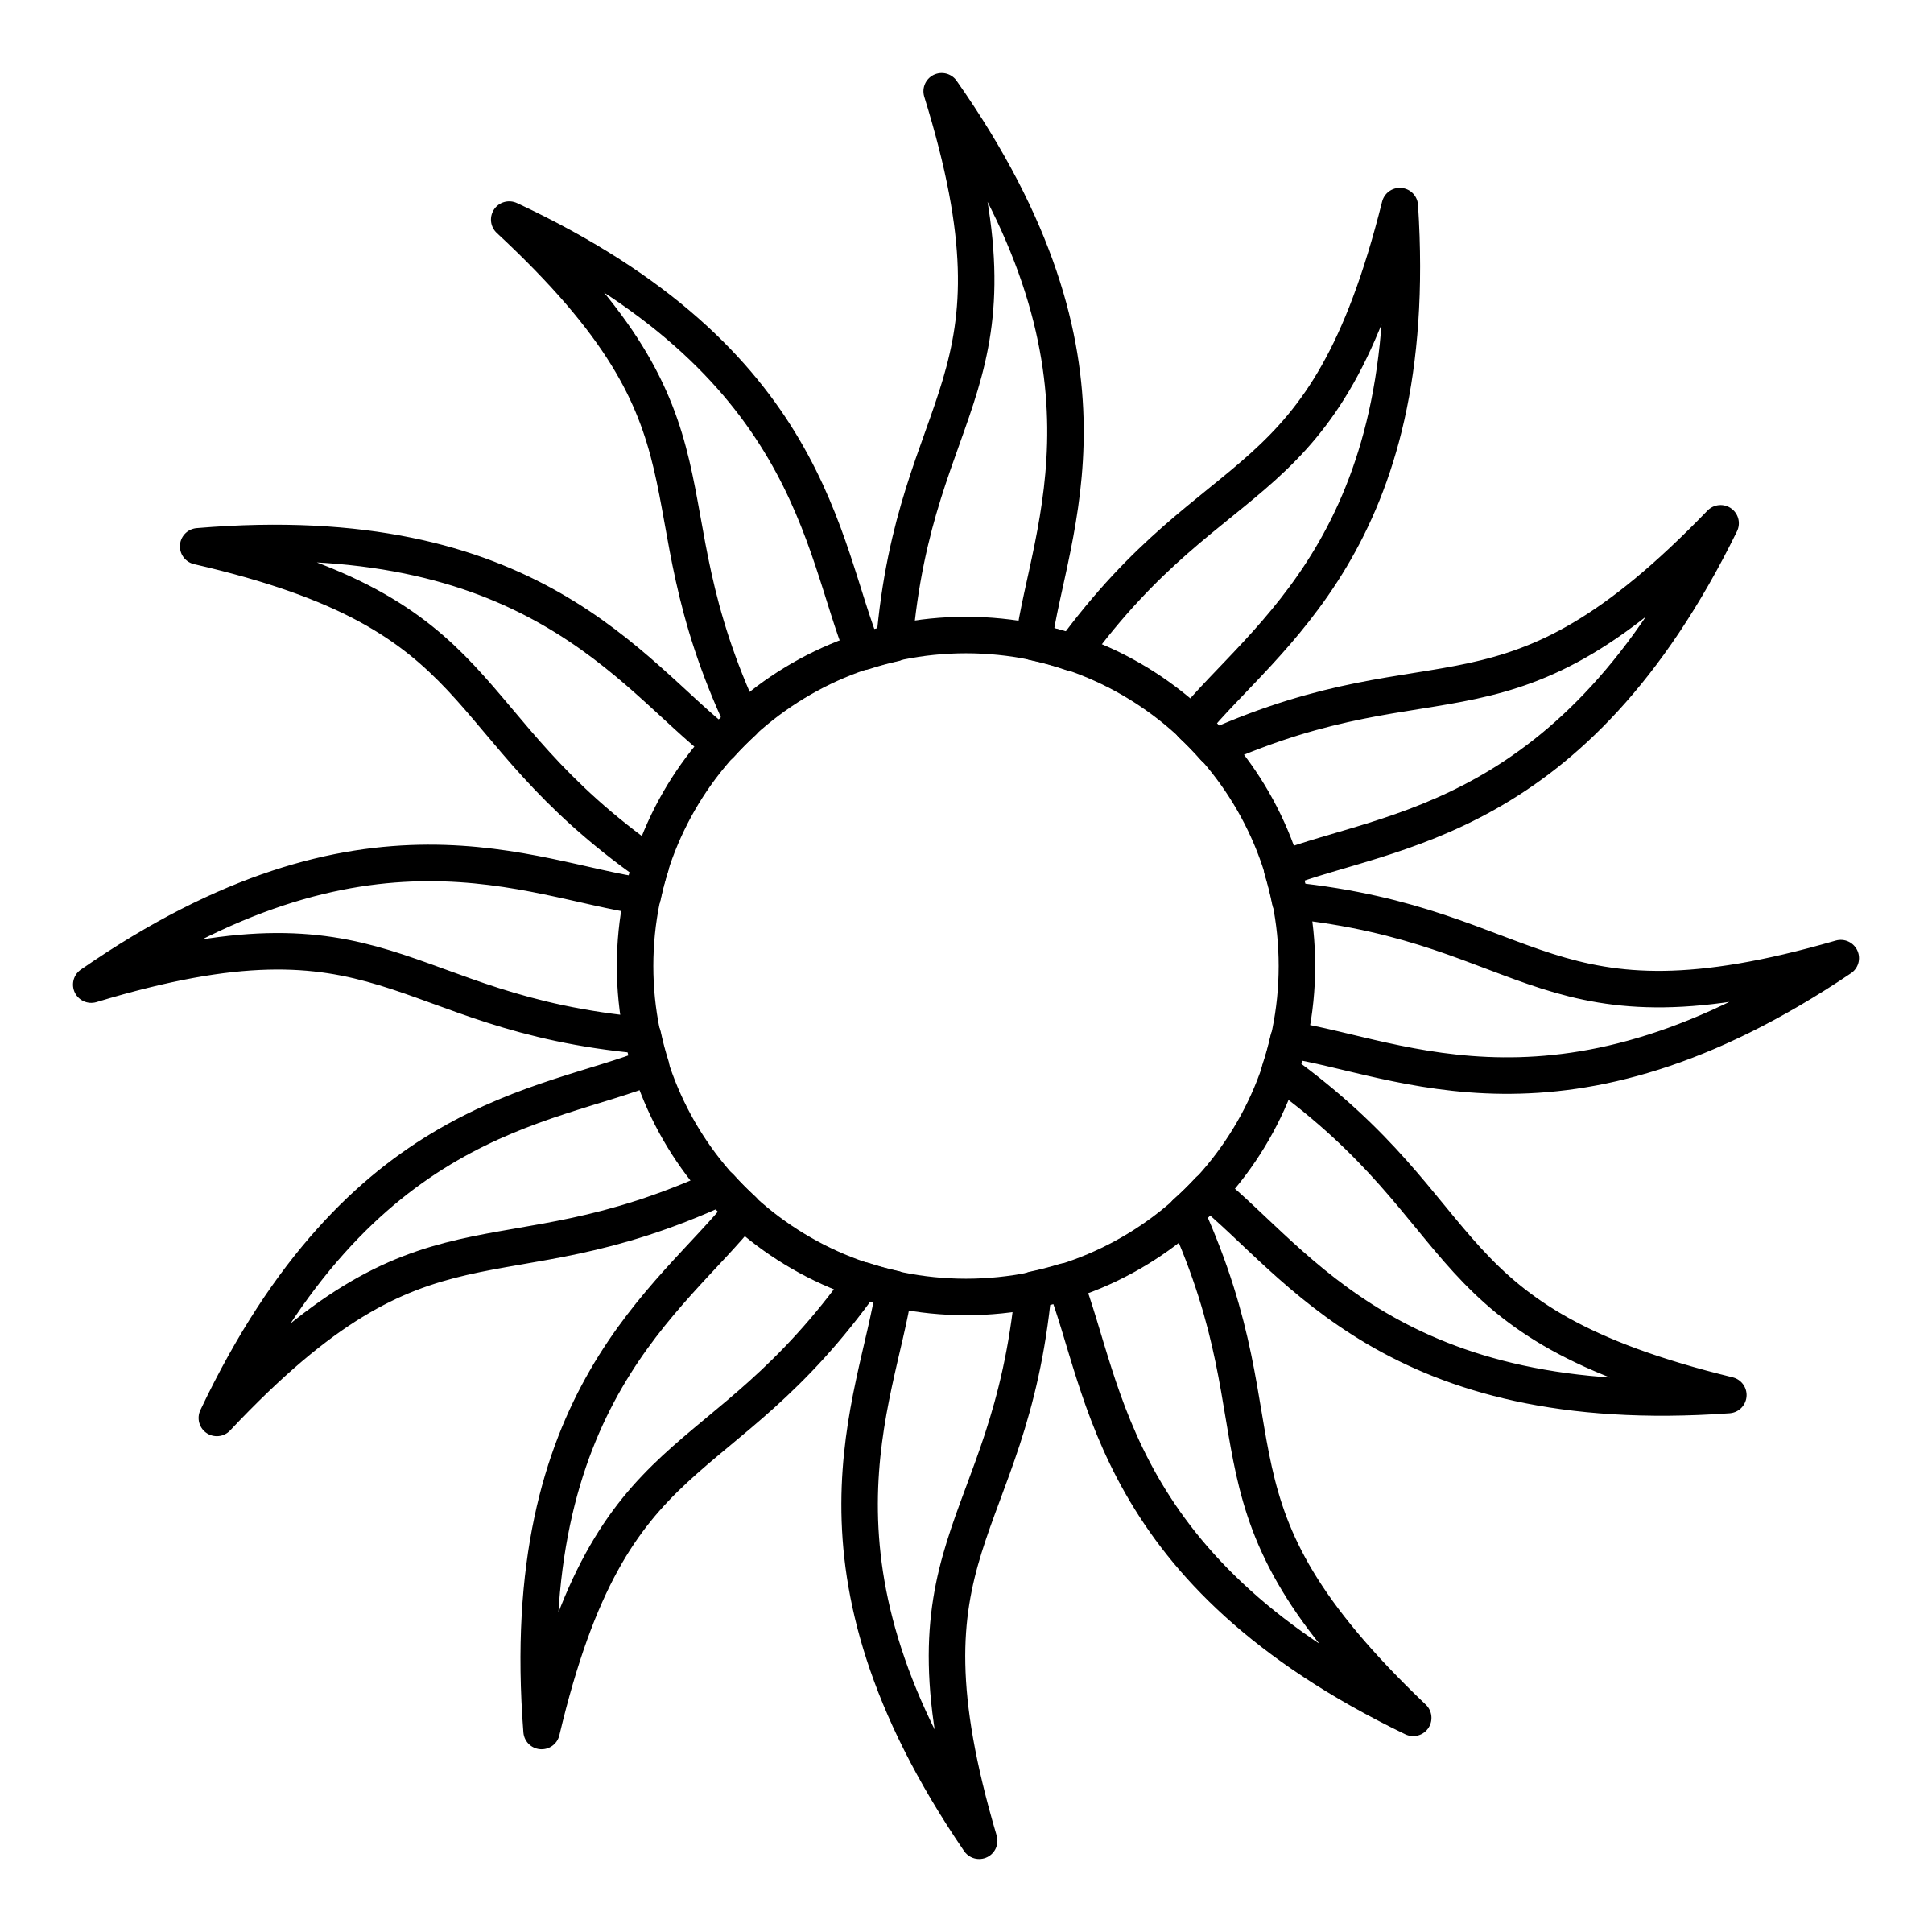 Sun Outline Drawing At Getdrawings